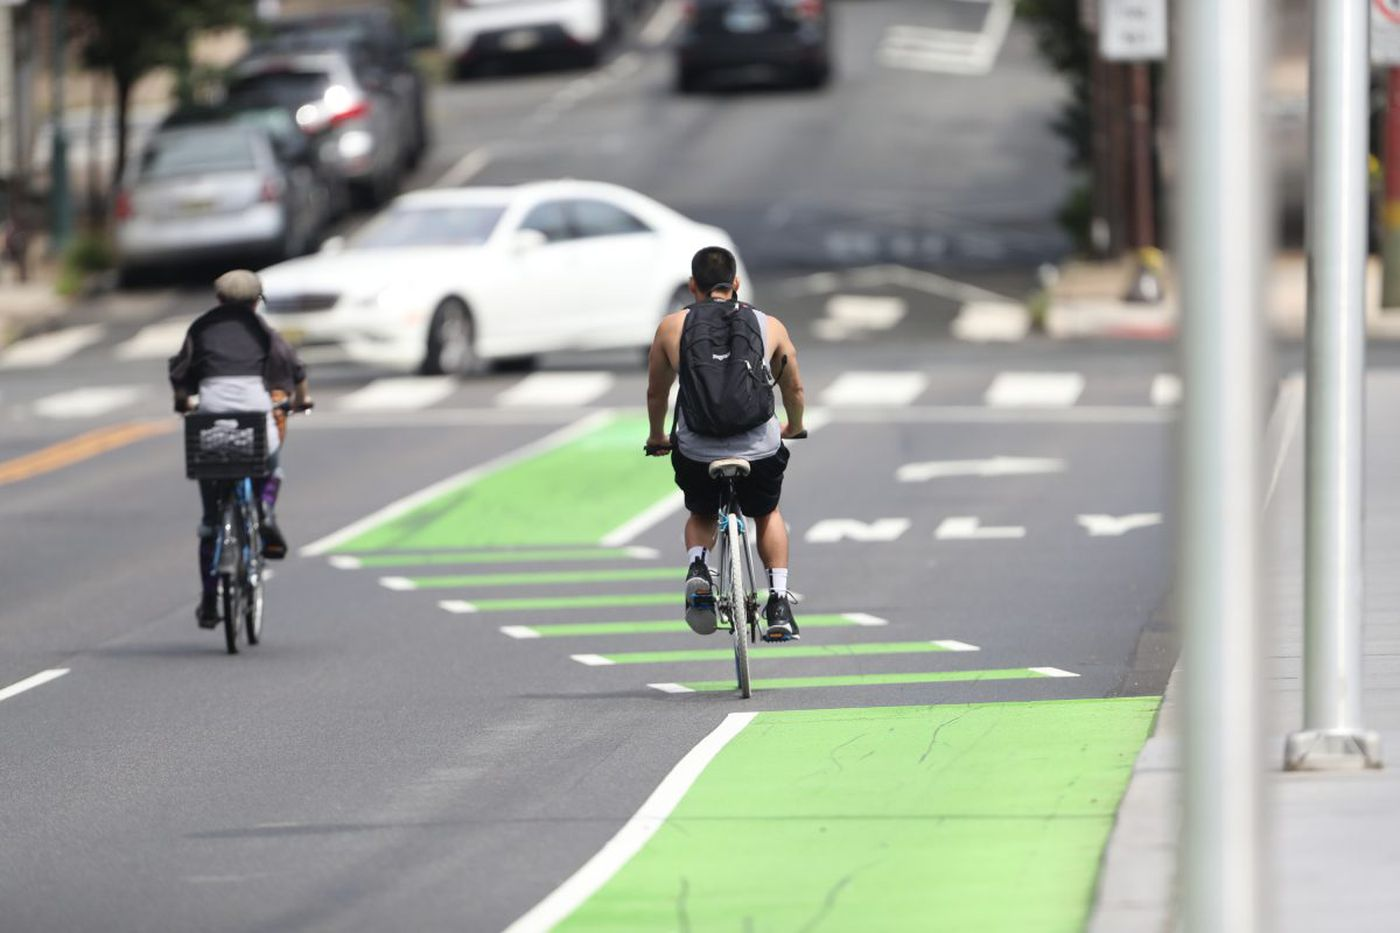 City Council's bike lane bill won't make Philadelphia's streets safer | Opinion